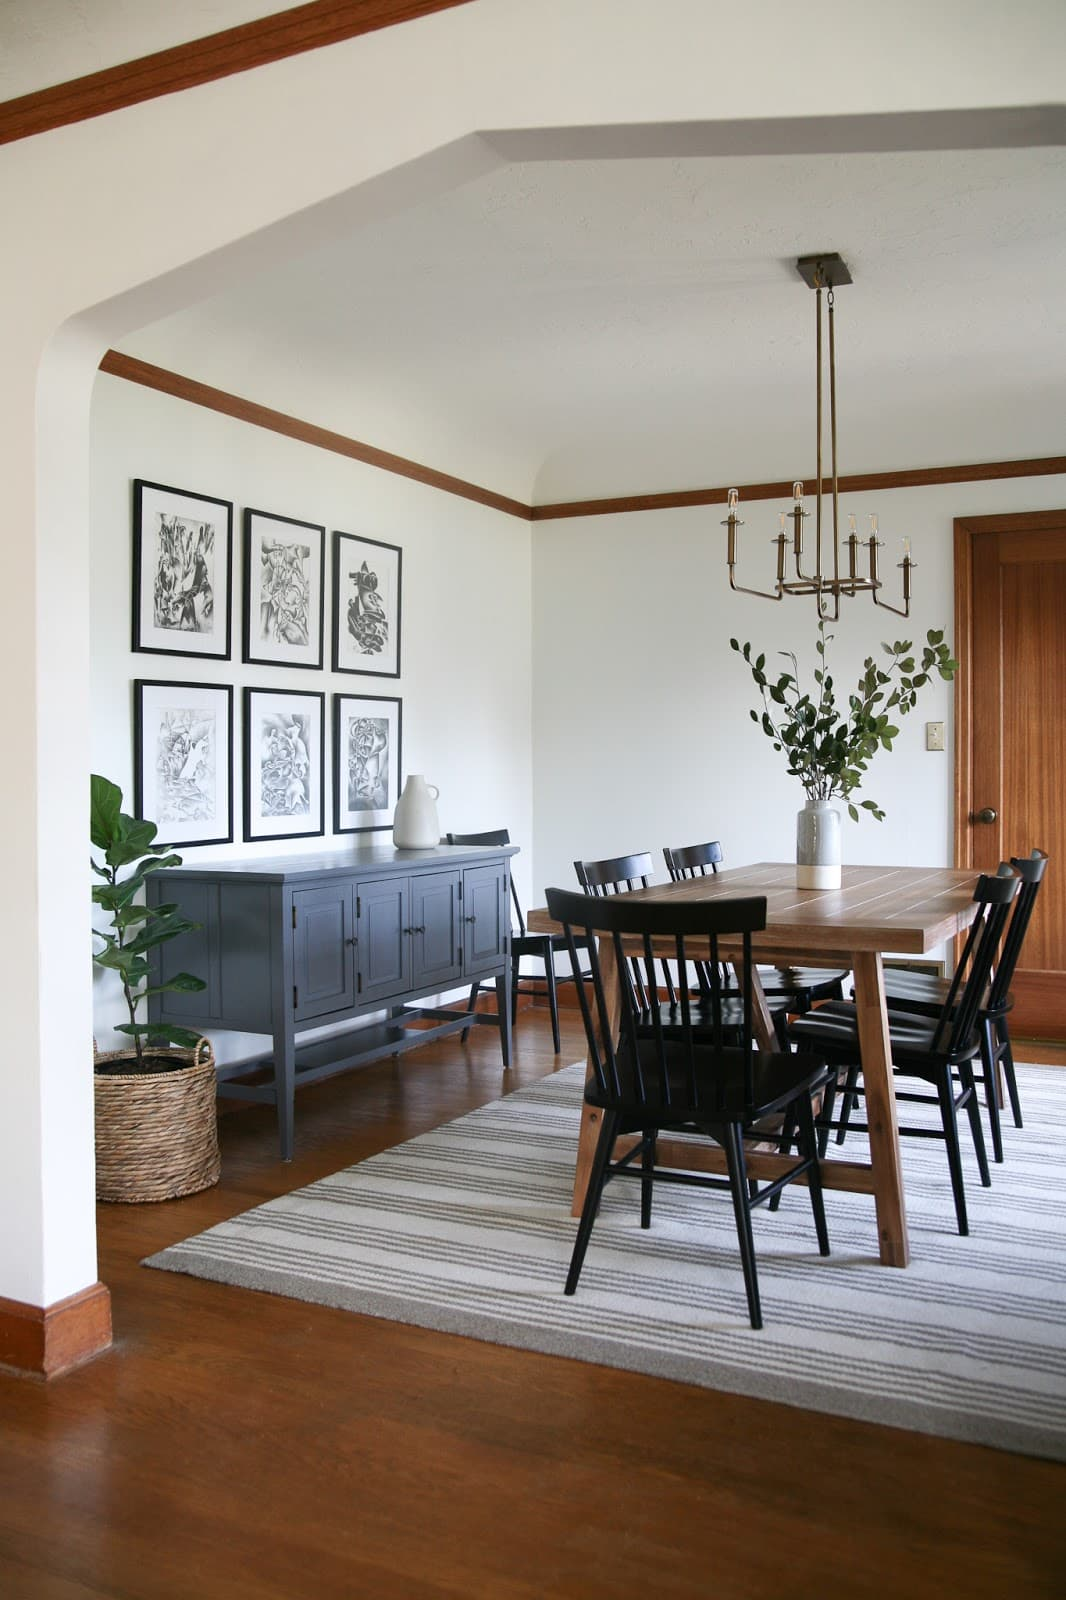 Dining room featuring a striped rug, black and white art and more,